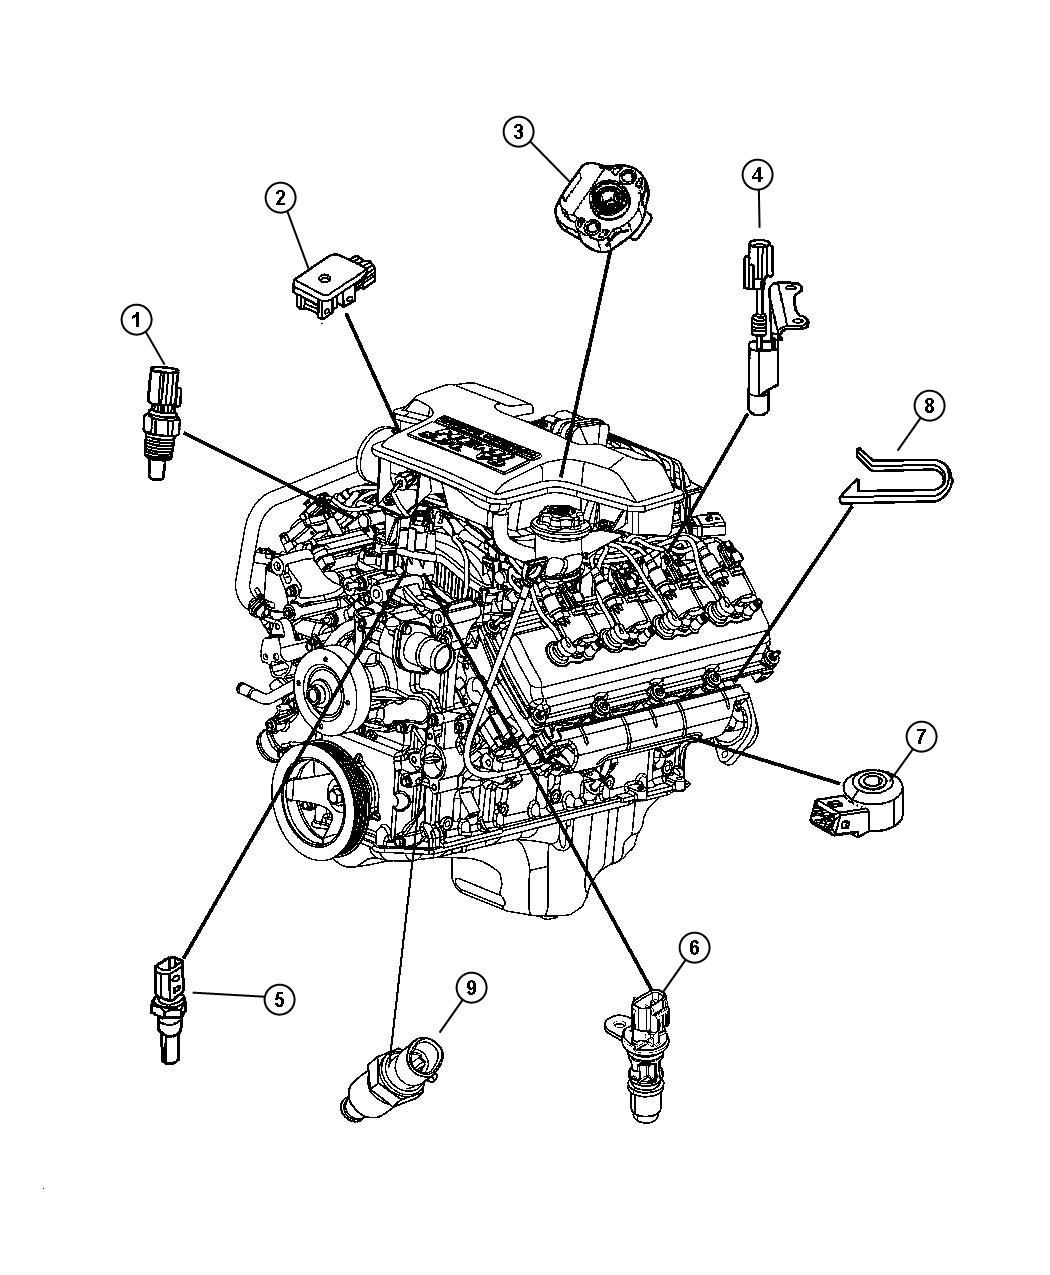 5 7l Chevy Engine Parts Diagram on 2006 trailblazer wiring diagram